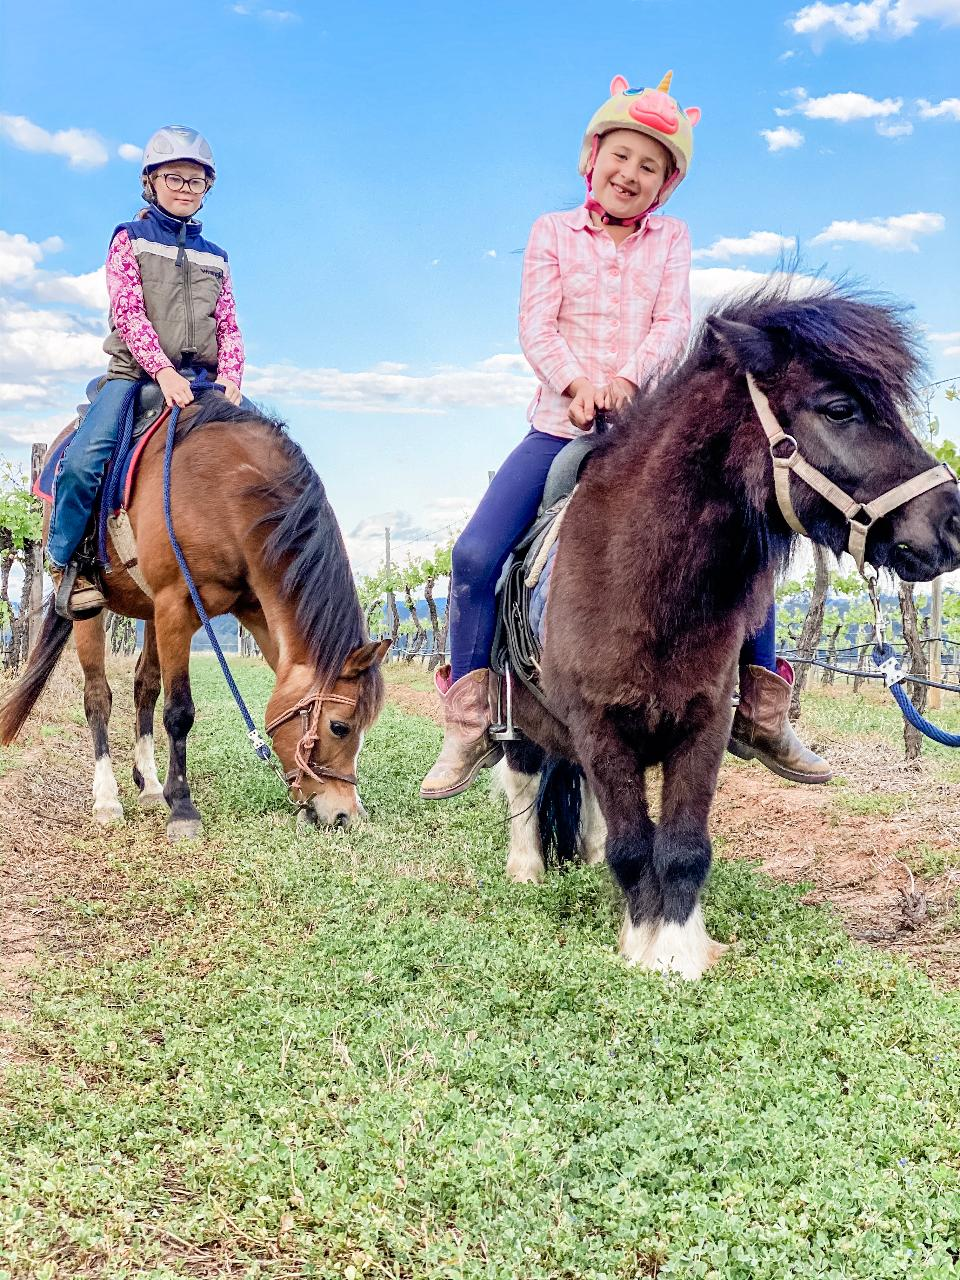 20-minute Child Lead Vineyard Pony Trek